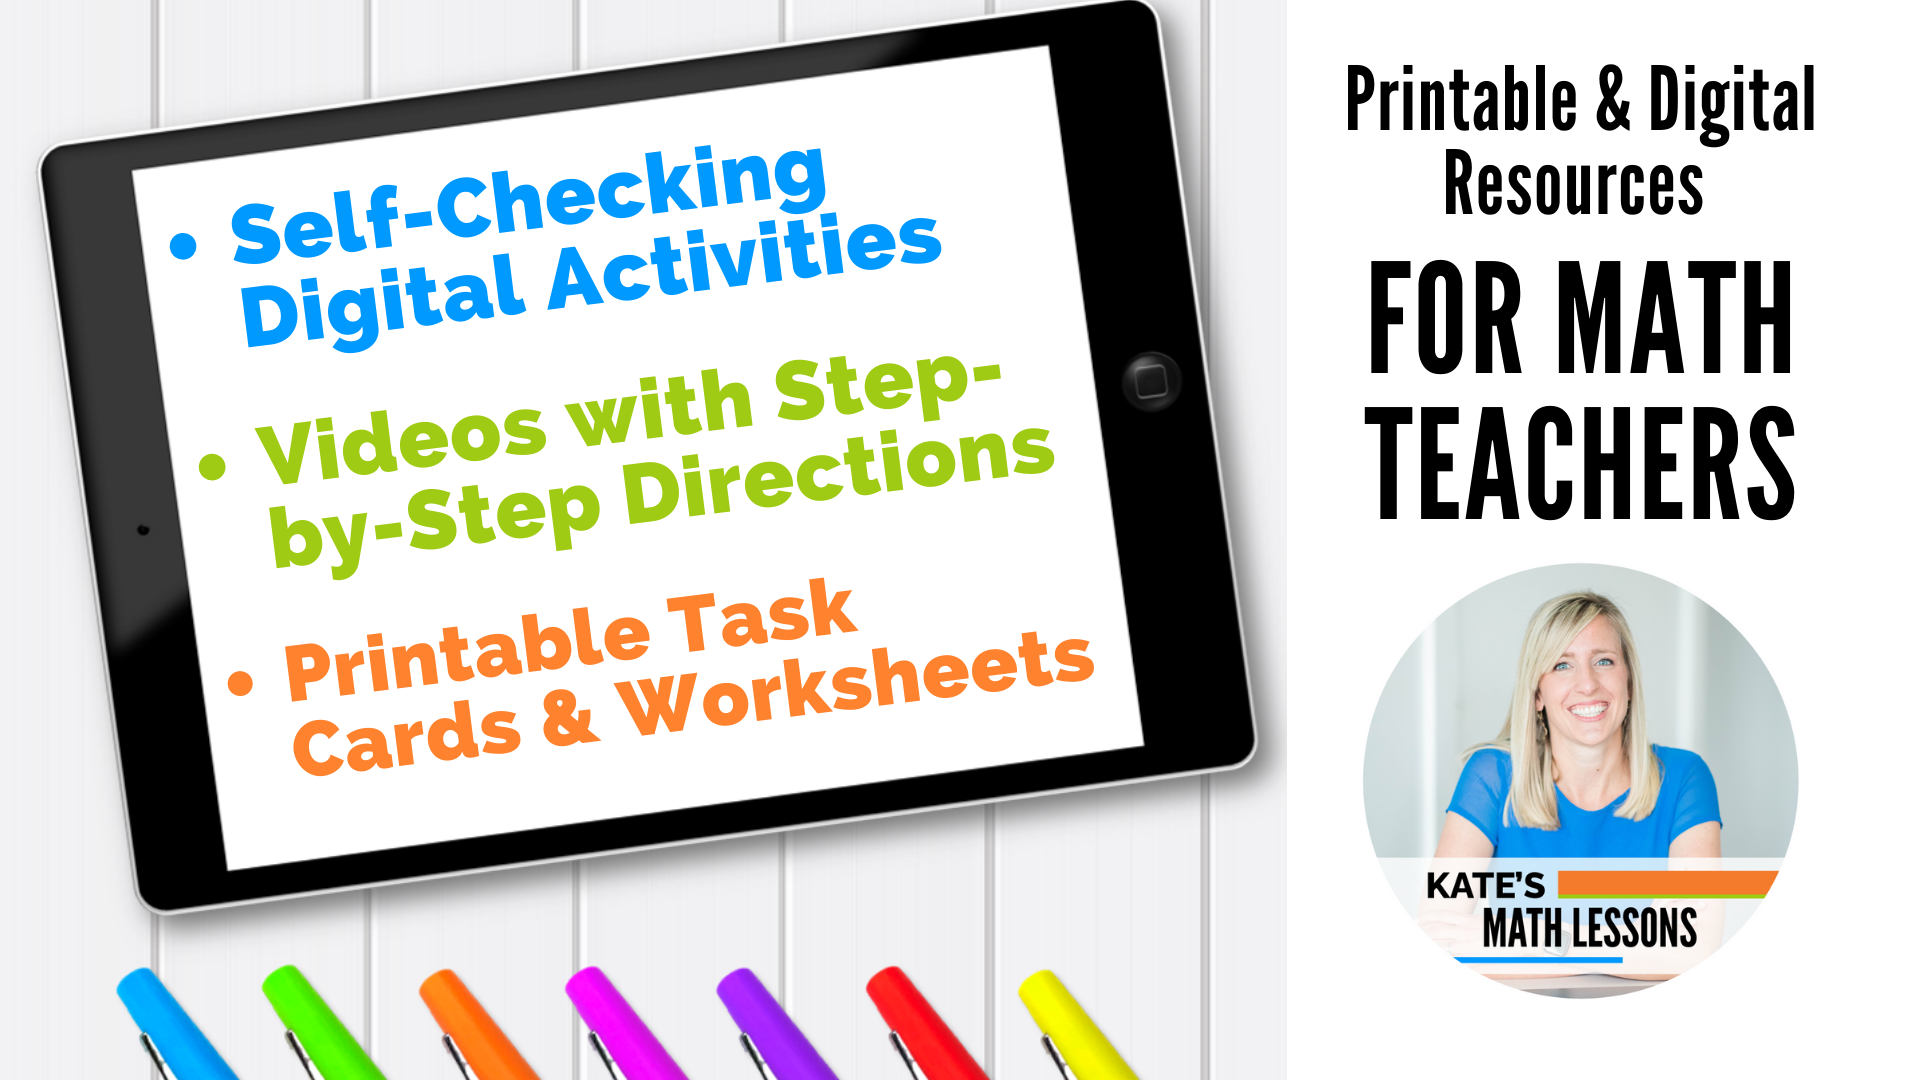 Algebra 1 Review Activities - printable and digital resources for math teachers